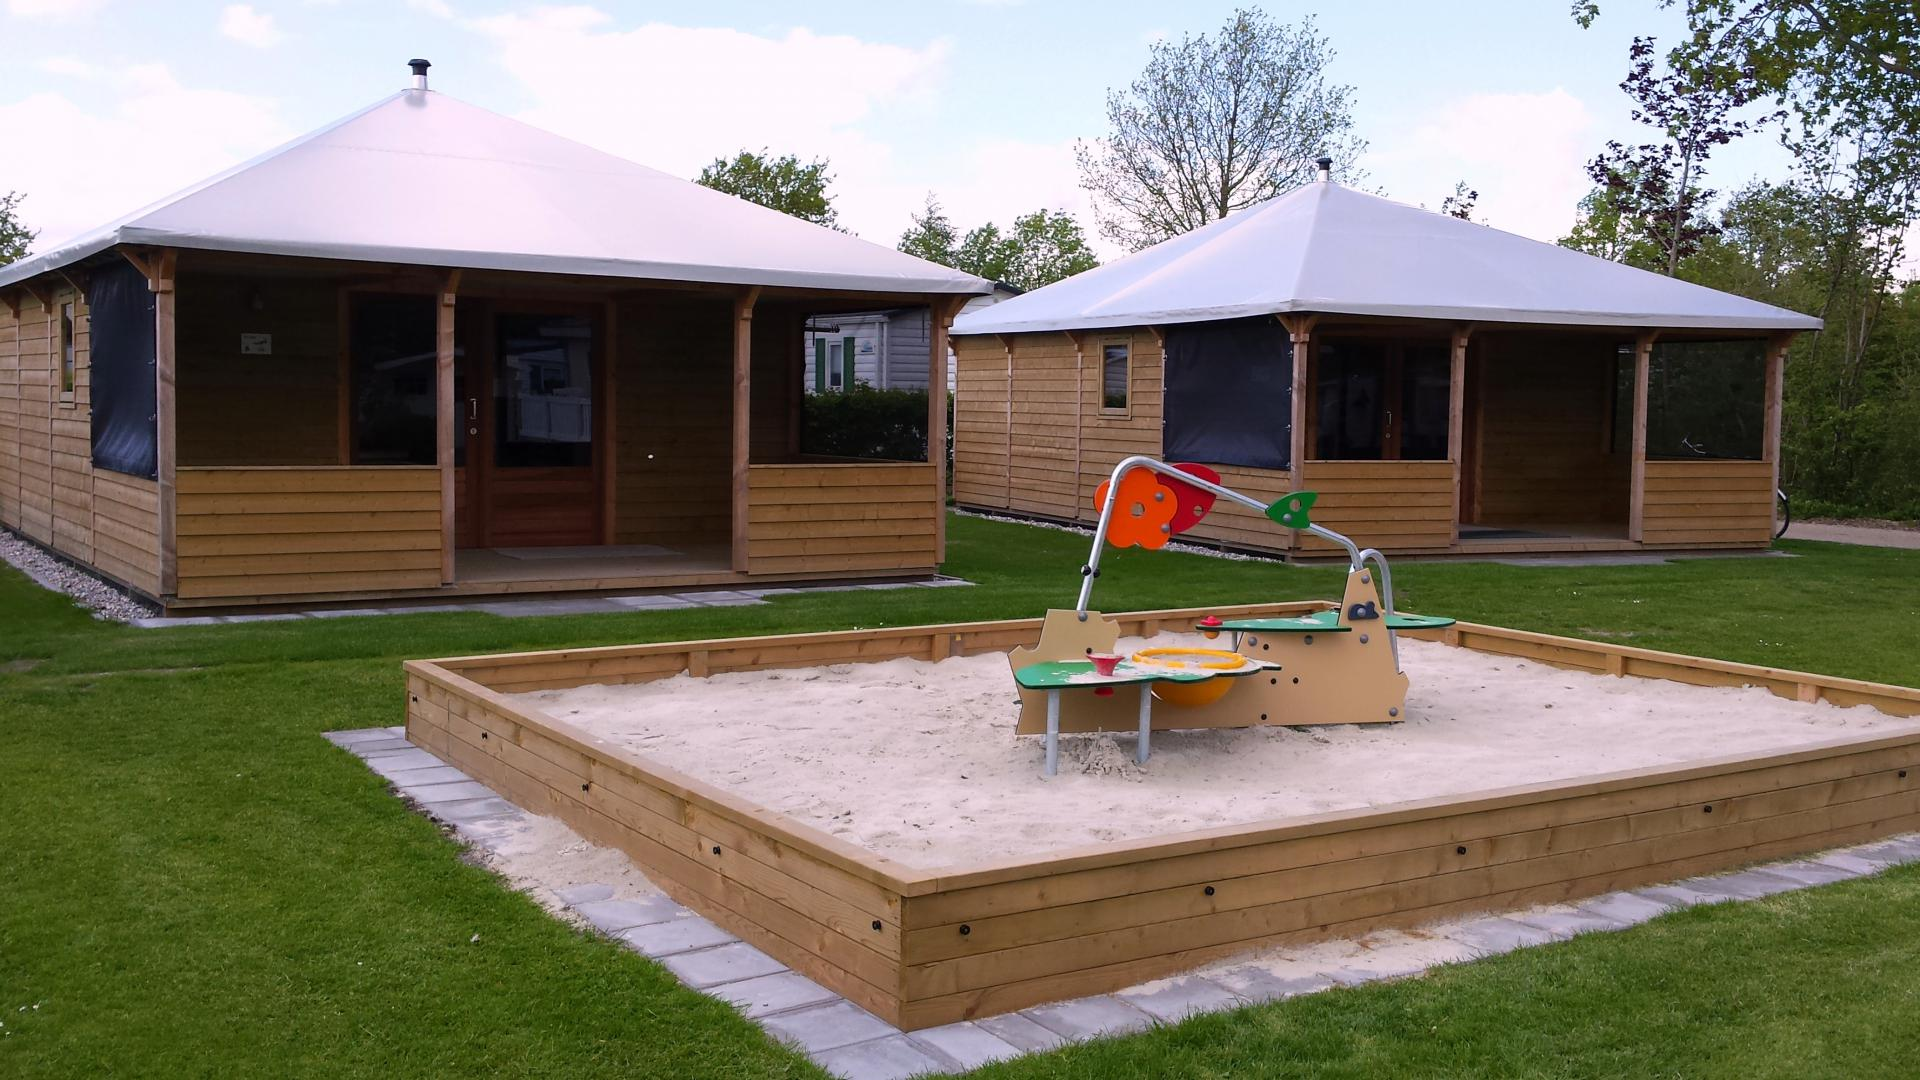 Camping Mounewetter Lodge 5/6 personen